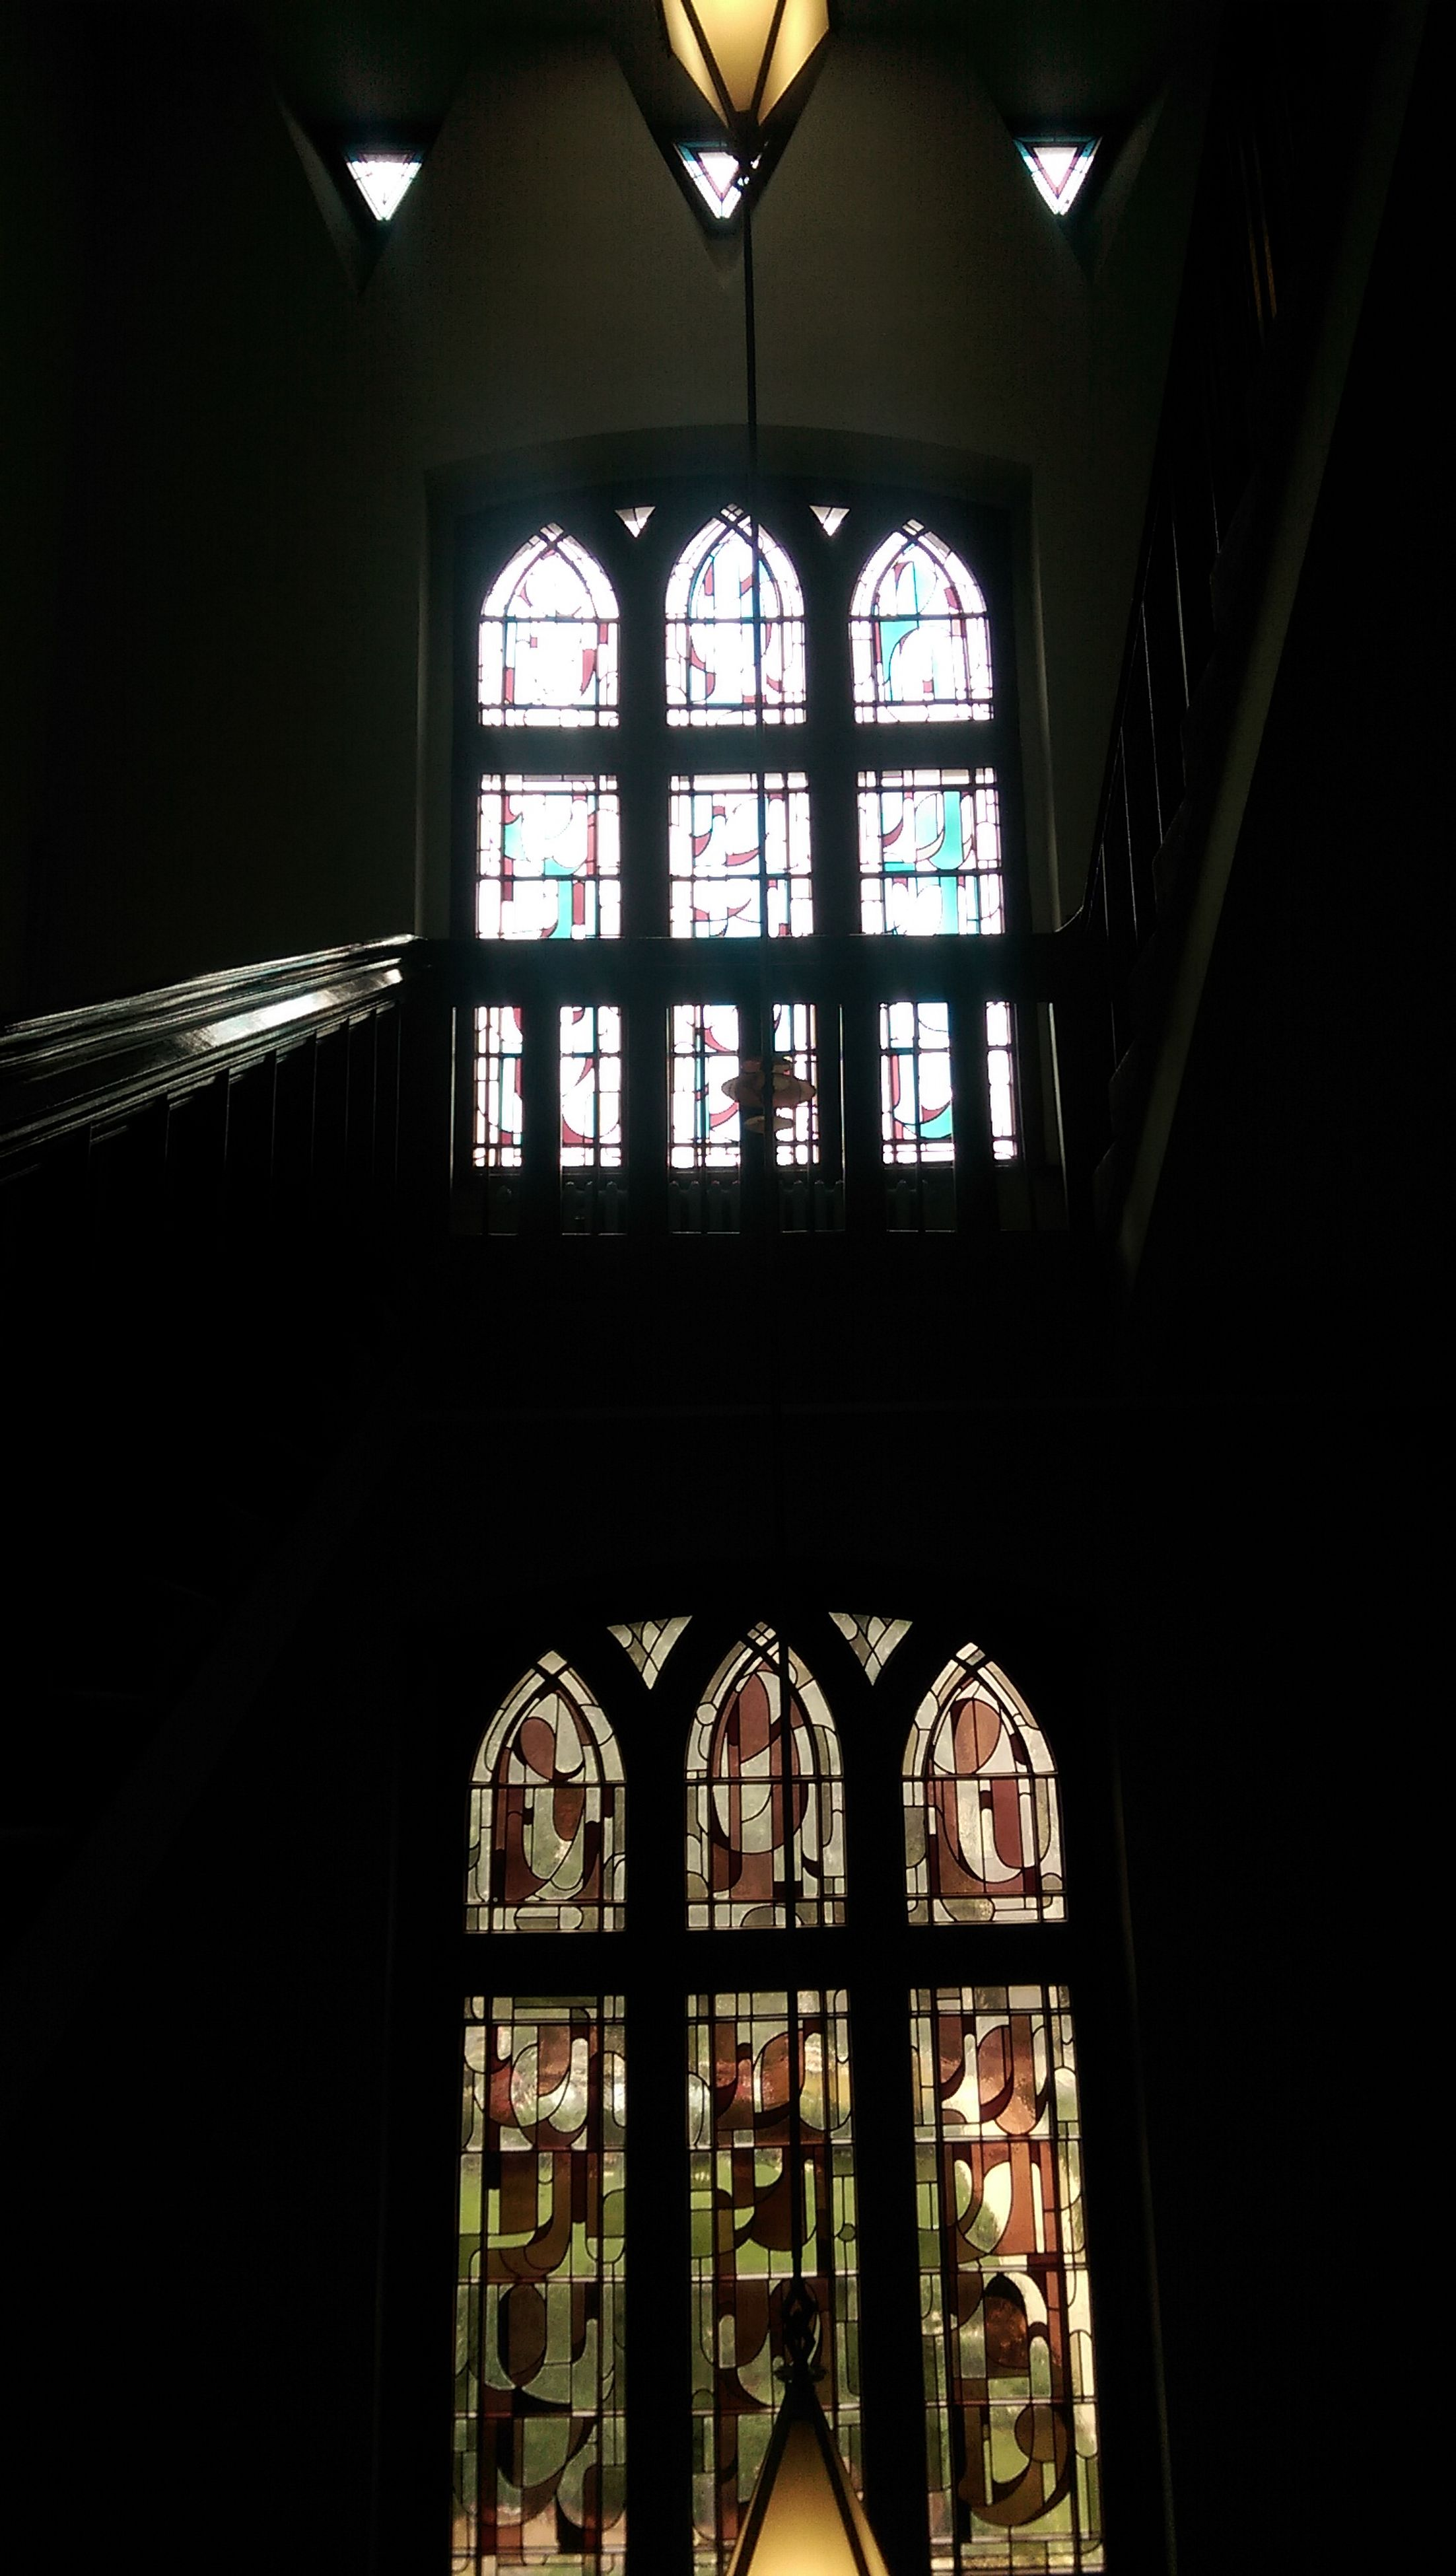 indoors, window, architecture, built structure, arch, glass - material, church, interior, place of worship, stained glass, ceiling, religion, illuminated, home interior, transparent, spirituality, dark, low angle view, no people